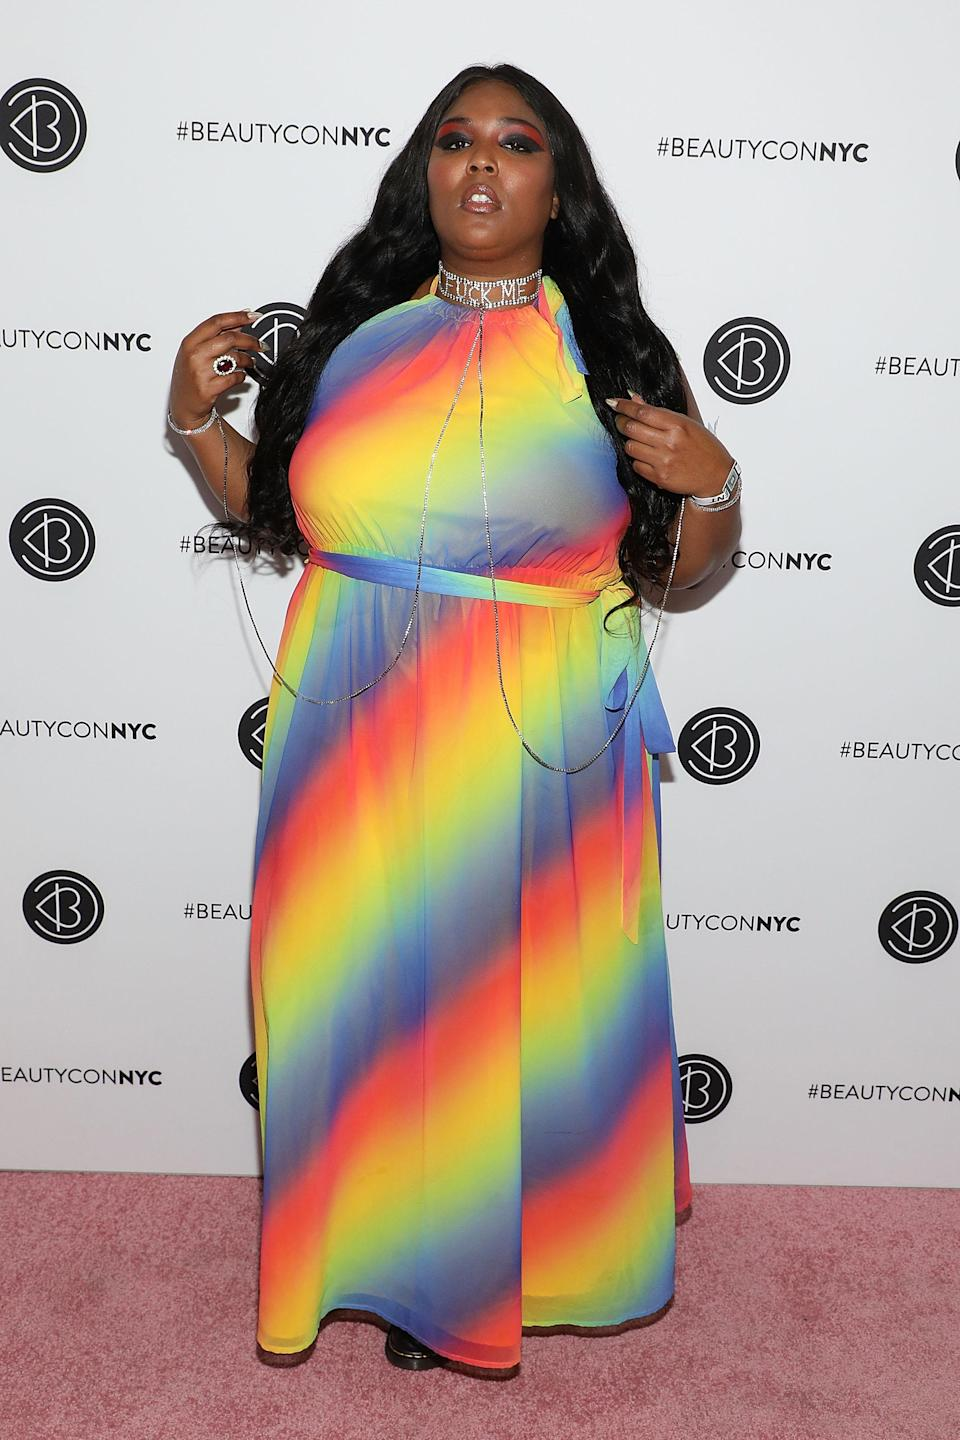 You might recognize this rainbow 'fit from one of Twitter's most famous reaction videos.